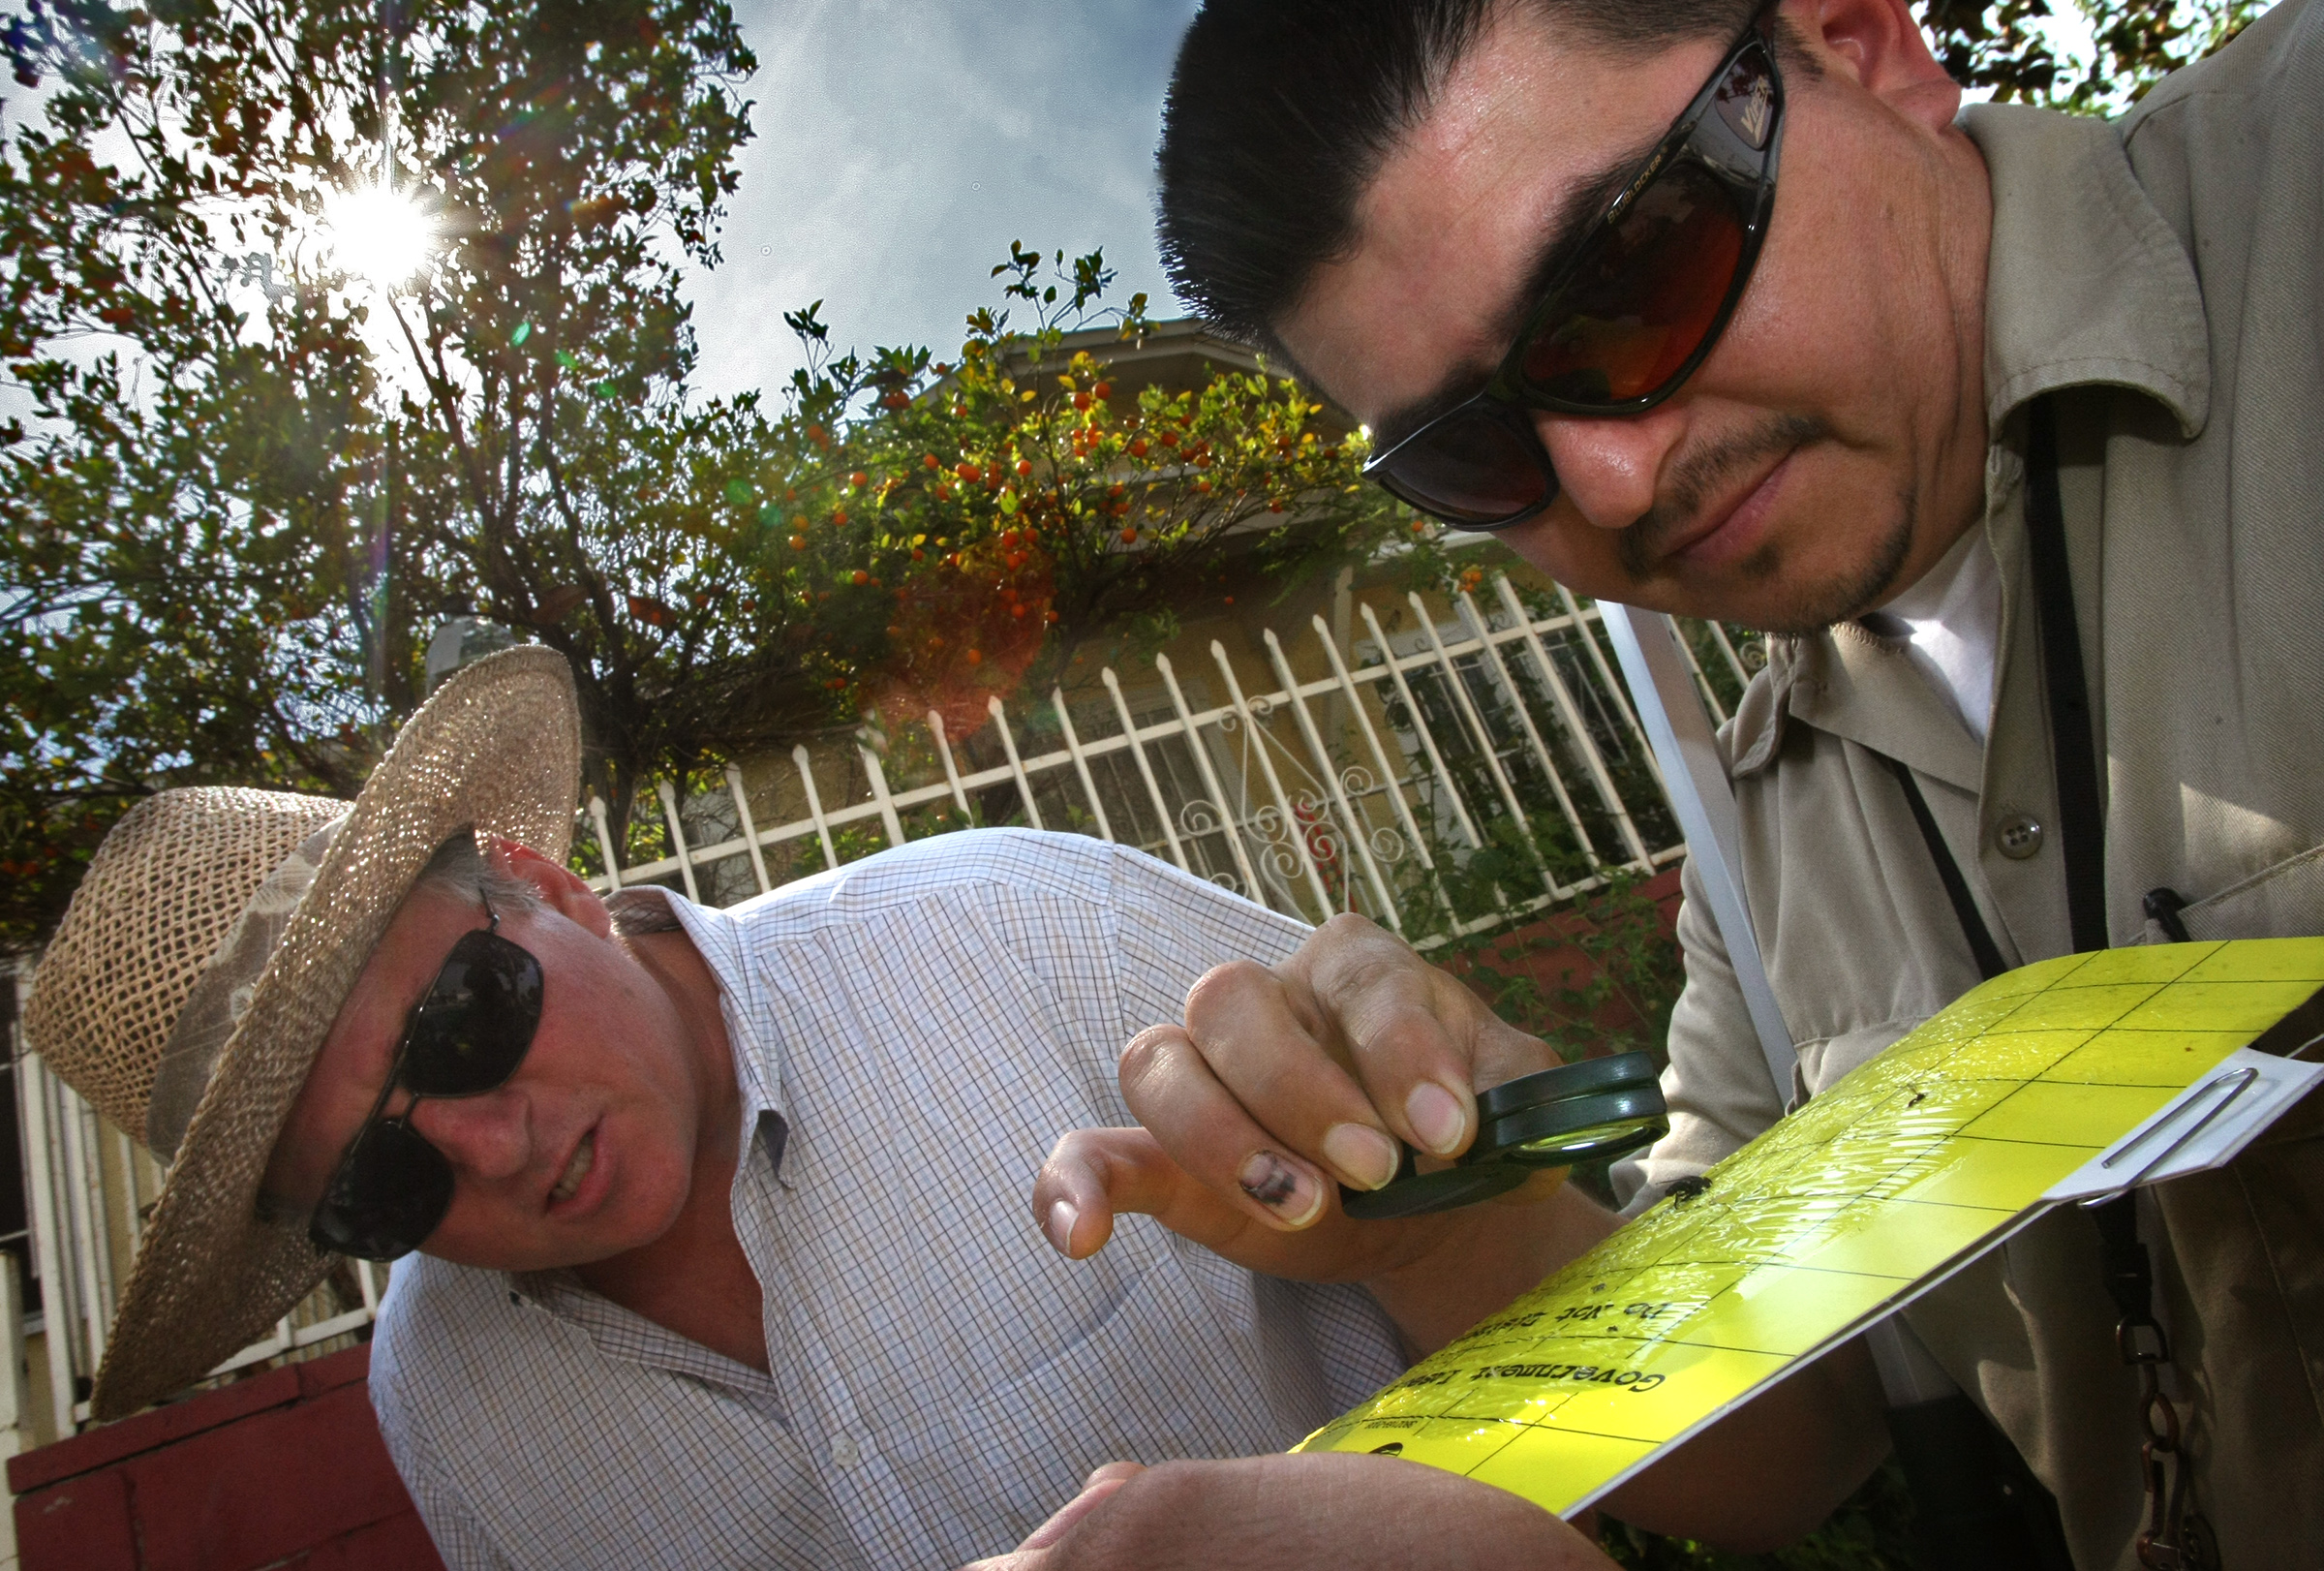 Steve Lyle, left, and Ignacio Valazquez with the California Dept. of Food & Agruculture examine insects stuck to a cardboard trap just removed from a citrus tree in a residential Los Angeles garden. They are most interested in catching 1/8th inch long psyllids to determine if any are infected with citrus greening disease. Credit: Don Bartletti/Los Angeles Times via Getty Images